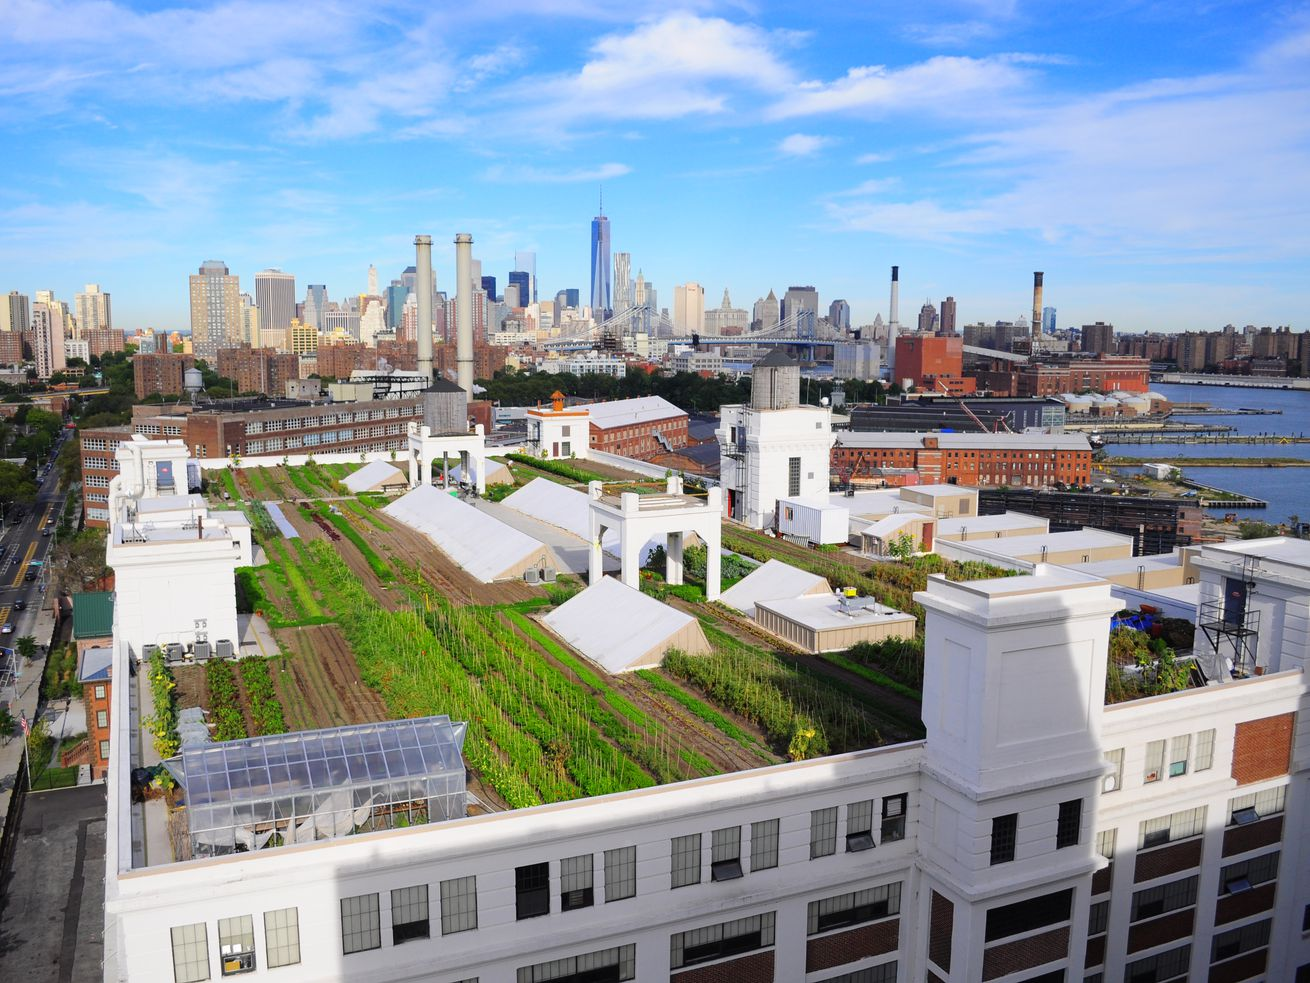 7 ways cities are transforming urban rooftops